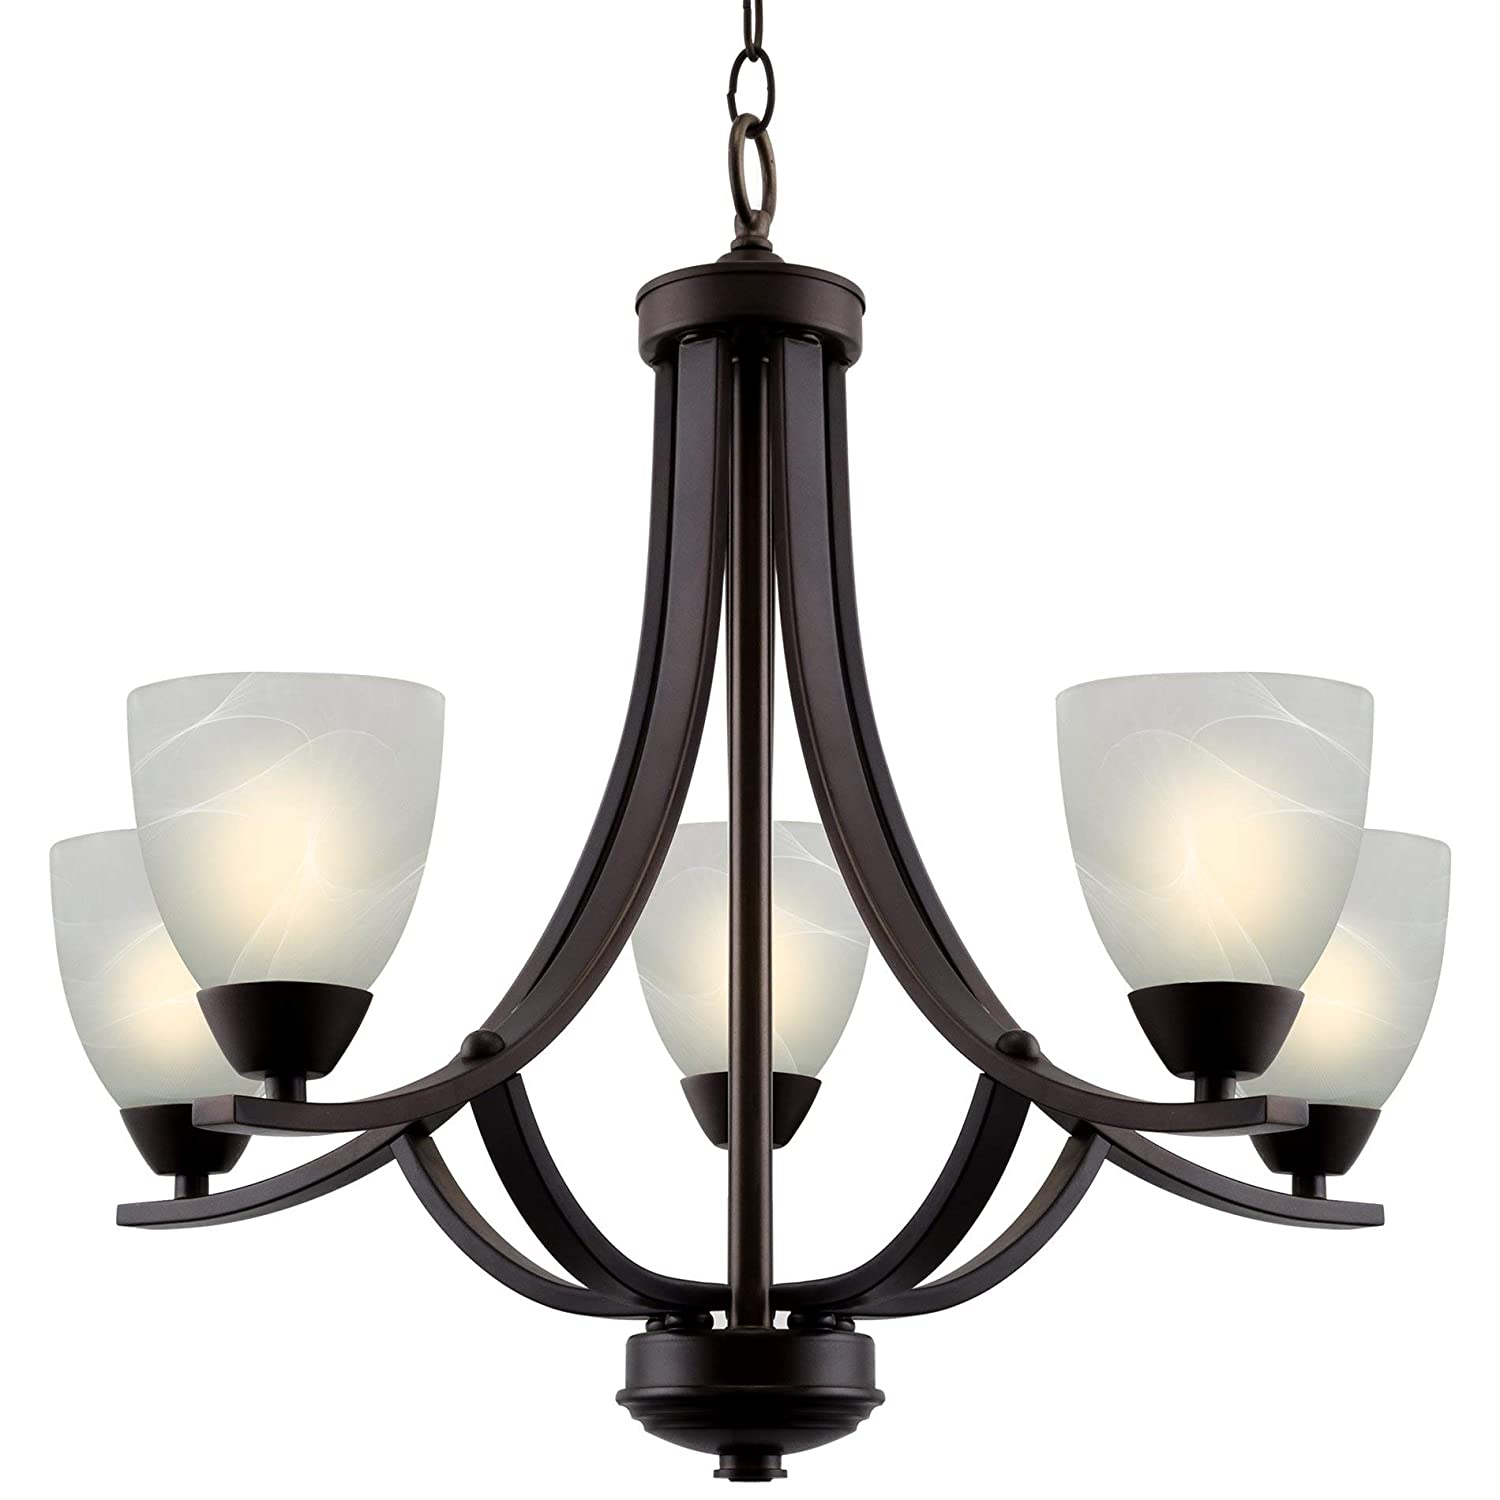 "Kira Home Weston 24"" Contemporary 5-Light Large Chandelier + Alabaster Glass Shades, Adjustable Chain, Oil Rubbed Bronze Finish"